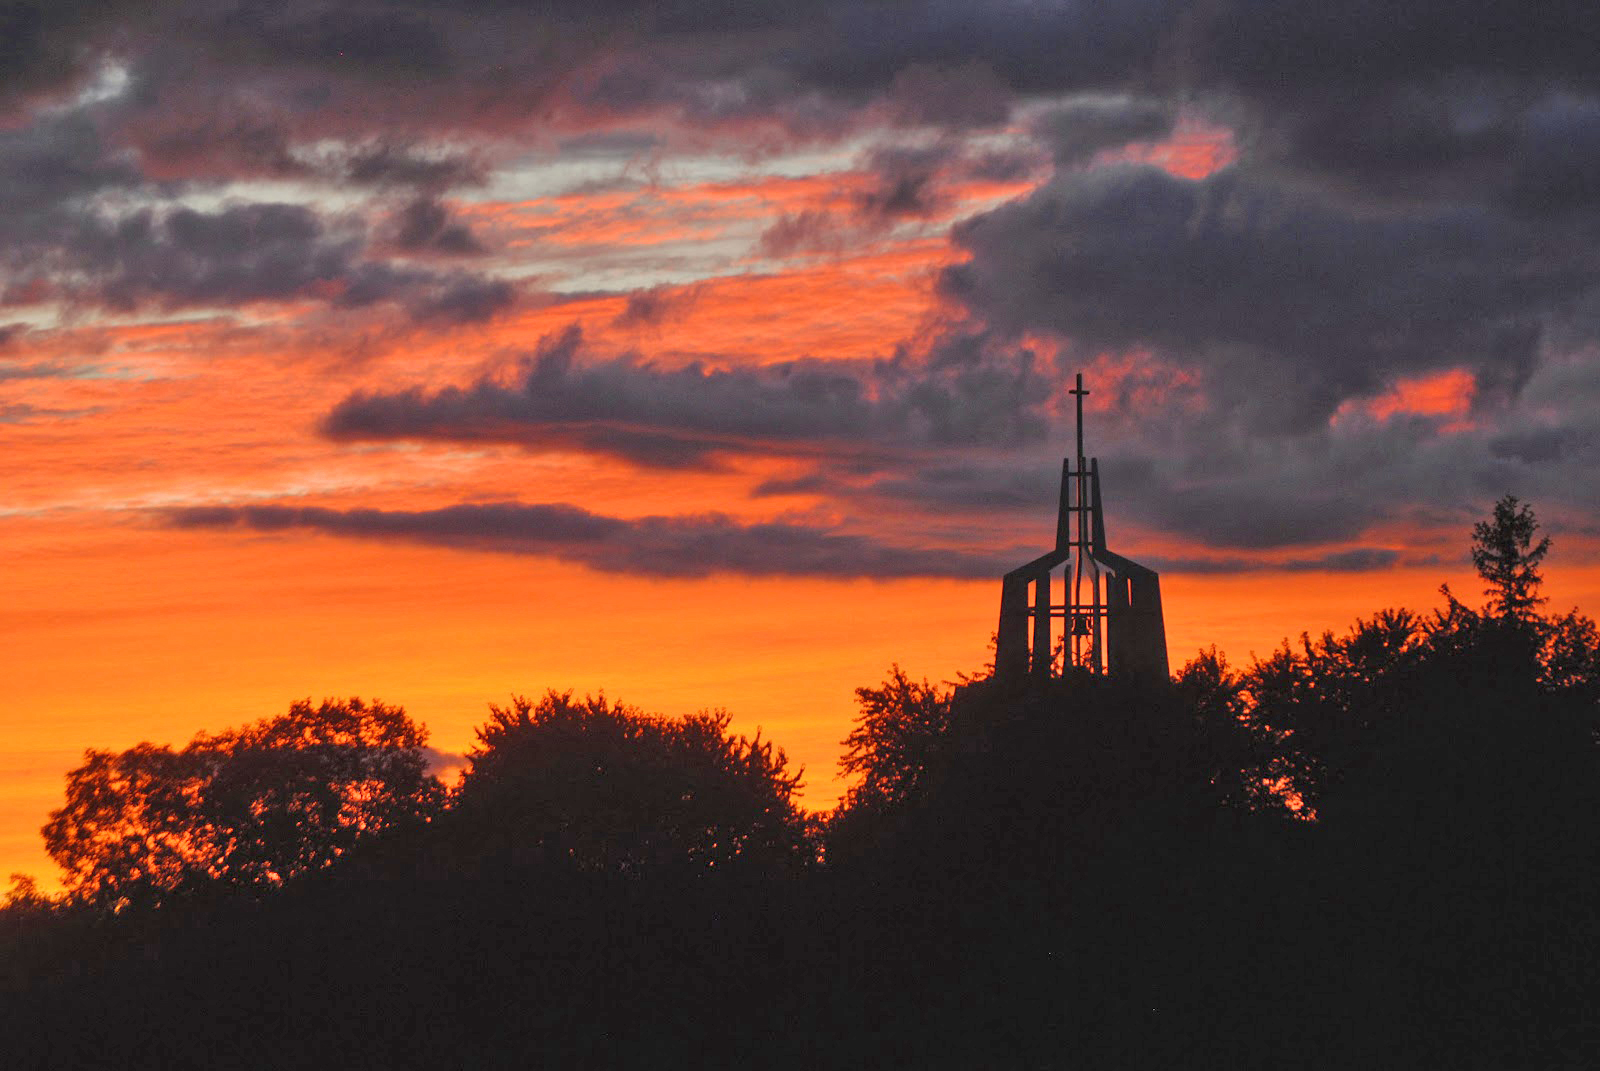 Marylake Shrine of Our Lady of Grace, at sunset. Click on the image for a larger view. Photo: Barry Wallace